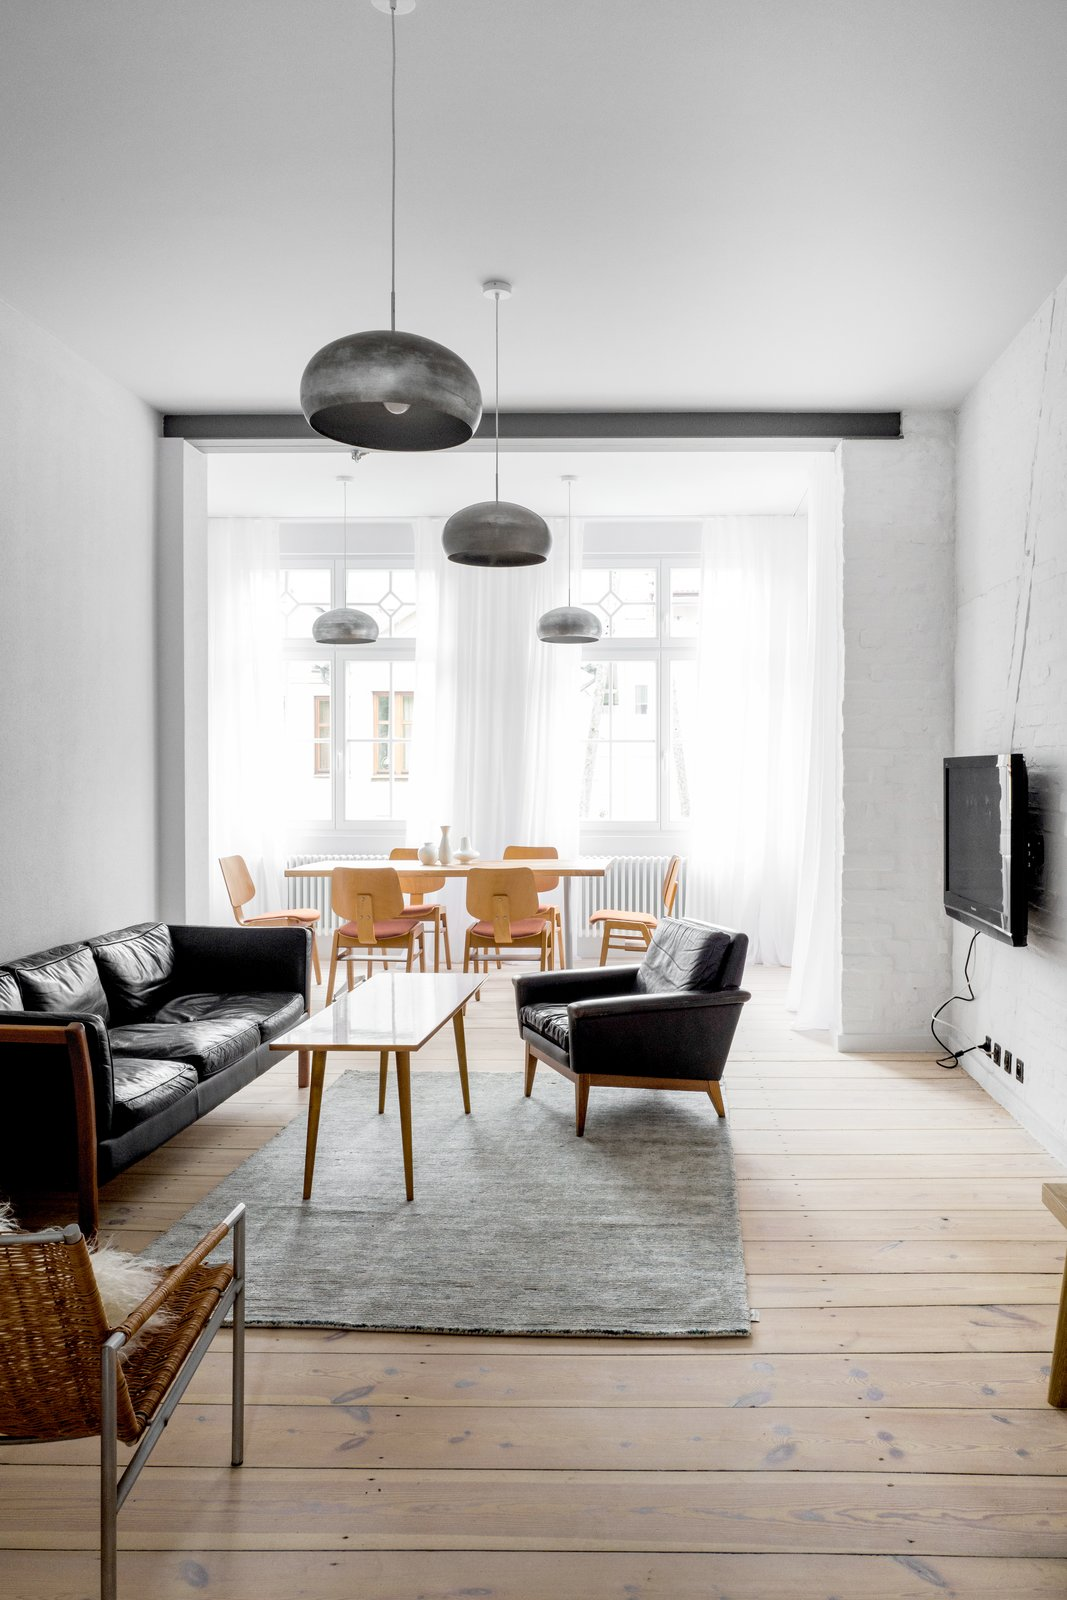 Tagged: Living Room, Sofa, Chair, Coffee Tables, Pendant Lighting, and Light Hardwood Floor.  Best Photos from A Holiday Apartment in Poland With the Perfect Mix of Vintage and Custom Furniture